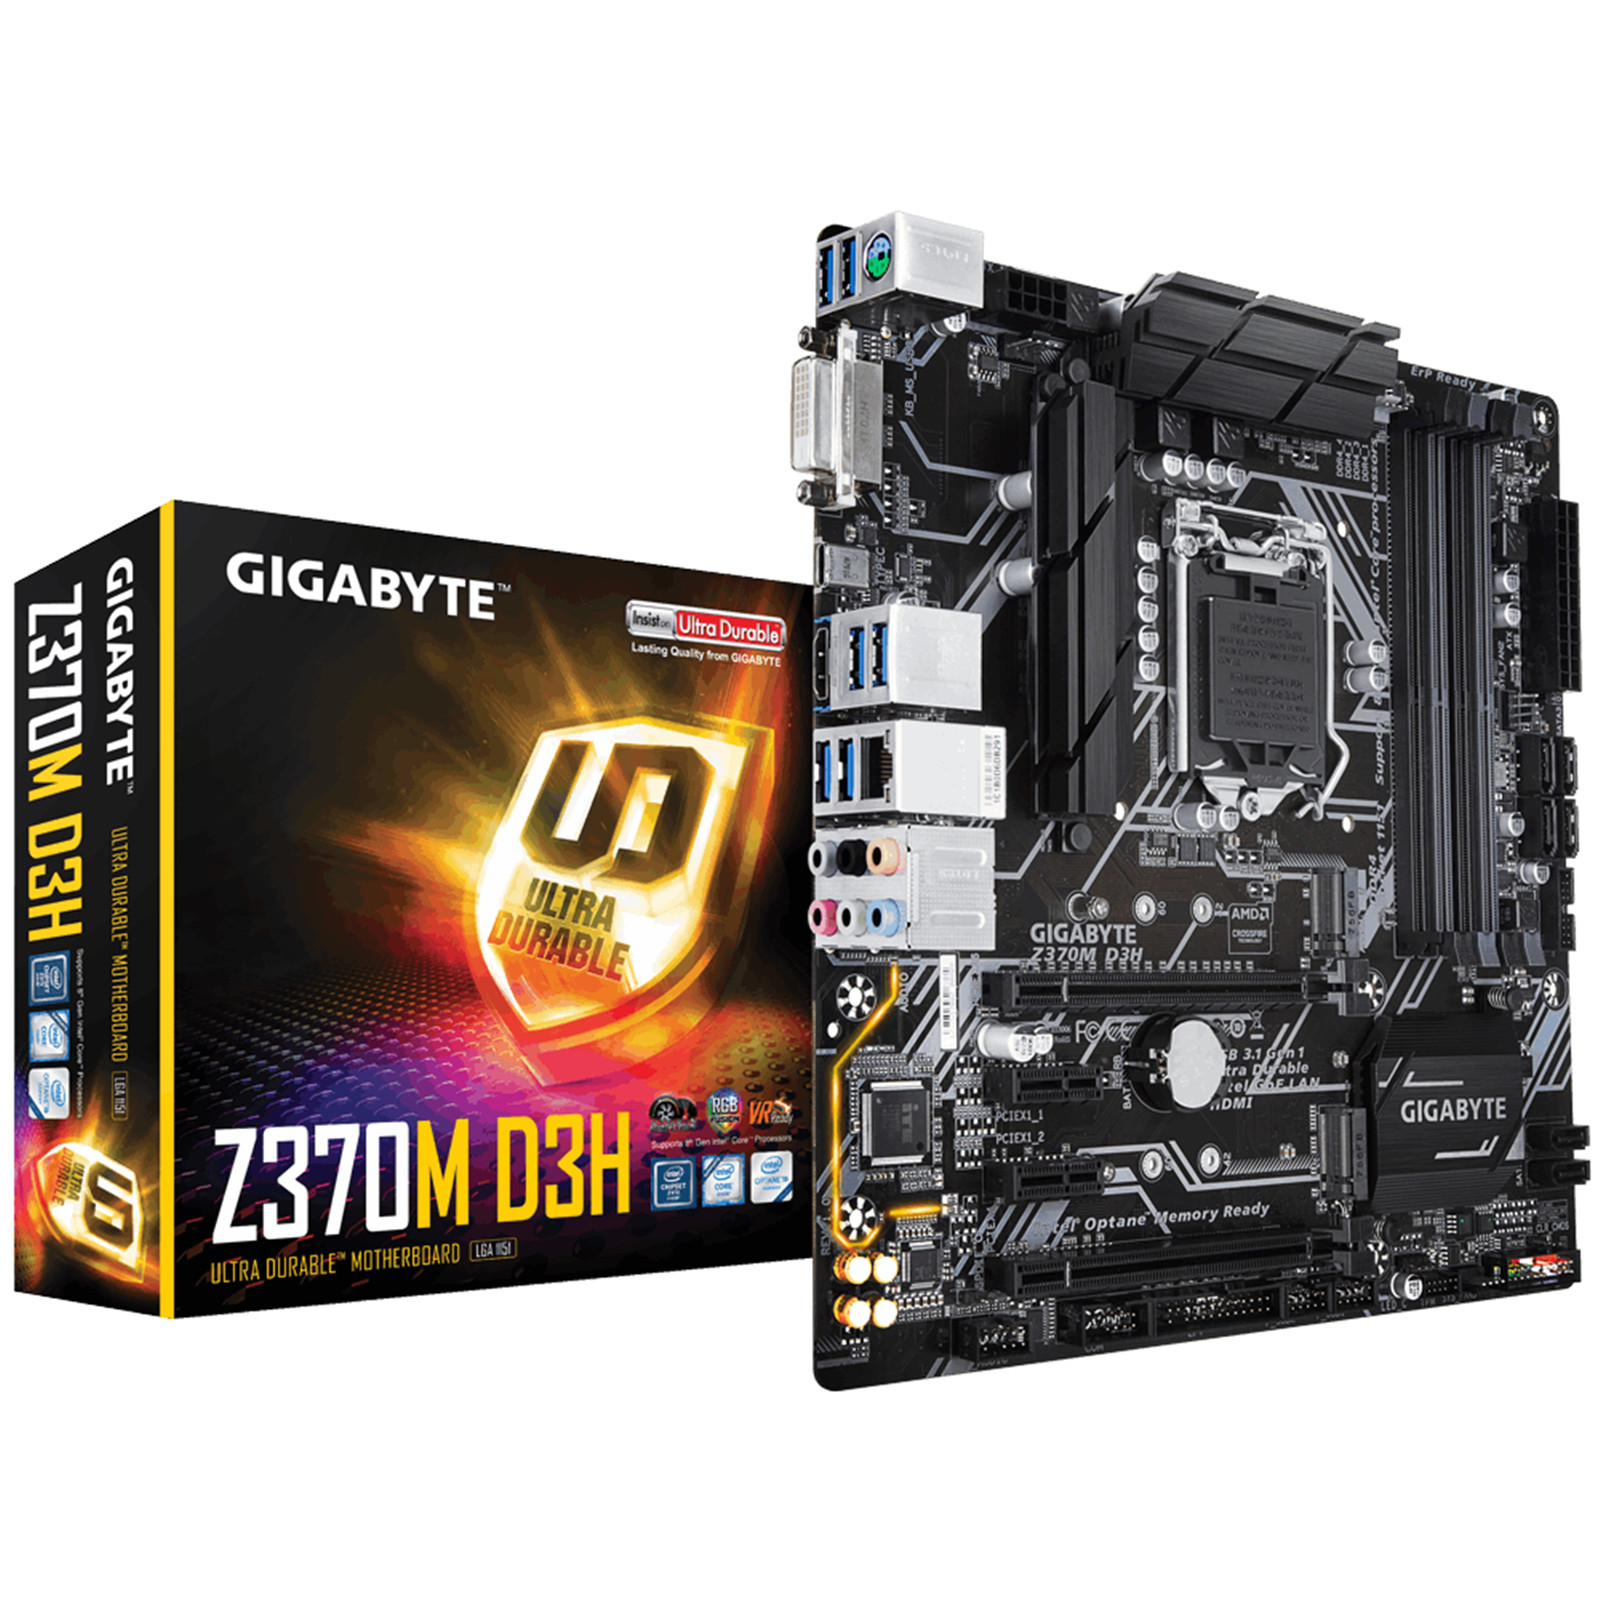 Buy Motherboards At Motherboard Asus H170 Pro Usb 31 Socket 1151 Lga Chipset Intel Gigabyte Z370m D3h Atx Form Factor For 8th Gen Coffee Lake